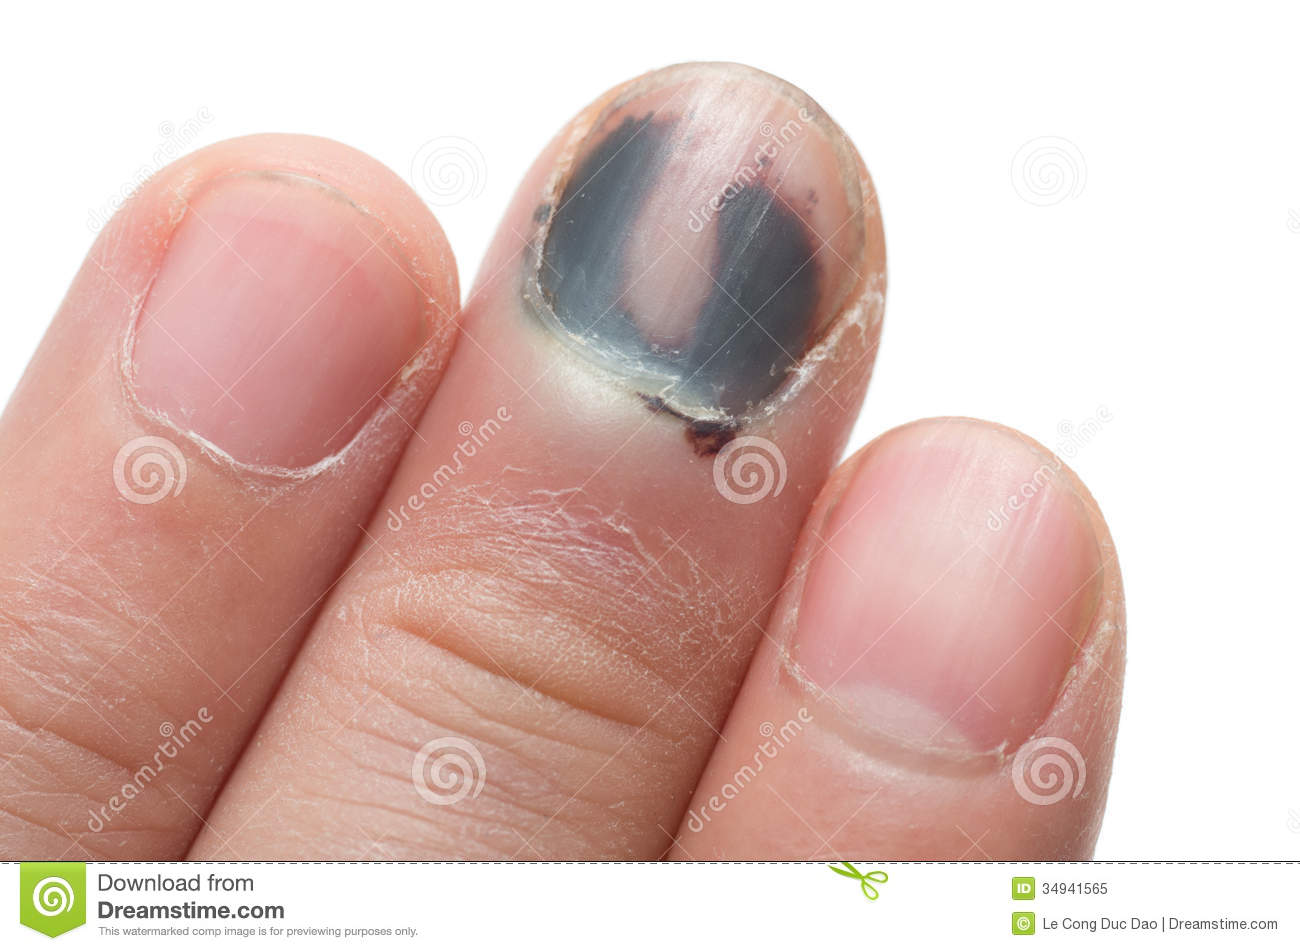 Nail Injury Stock Photos - Royalty Free Pictures